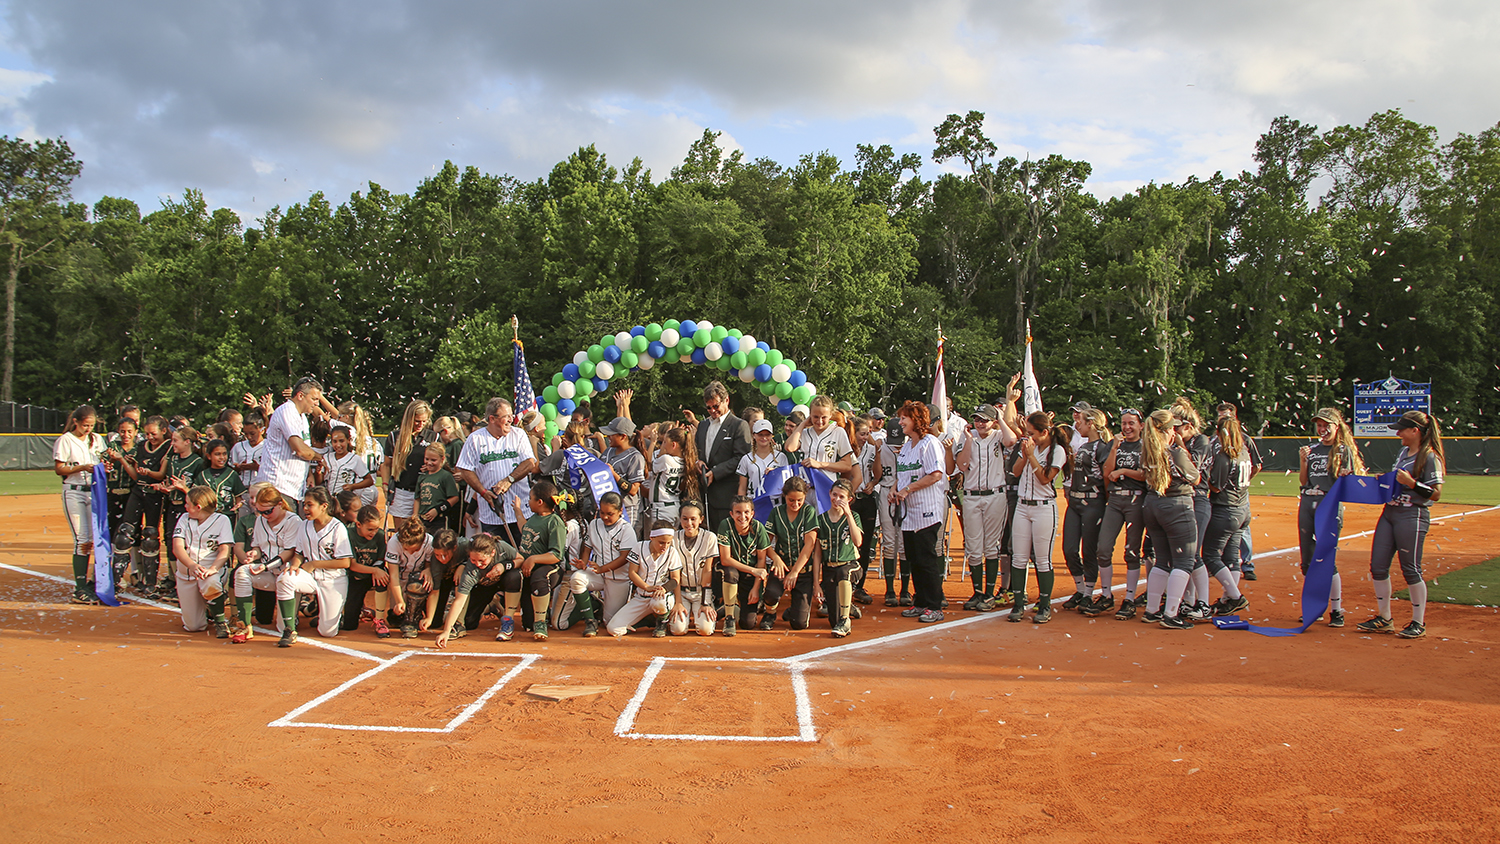 Wharton-Smith Celebrates Re-Opening of Soldiers Creek Park